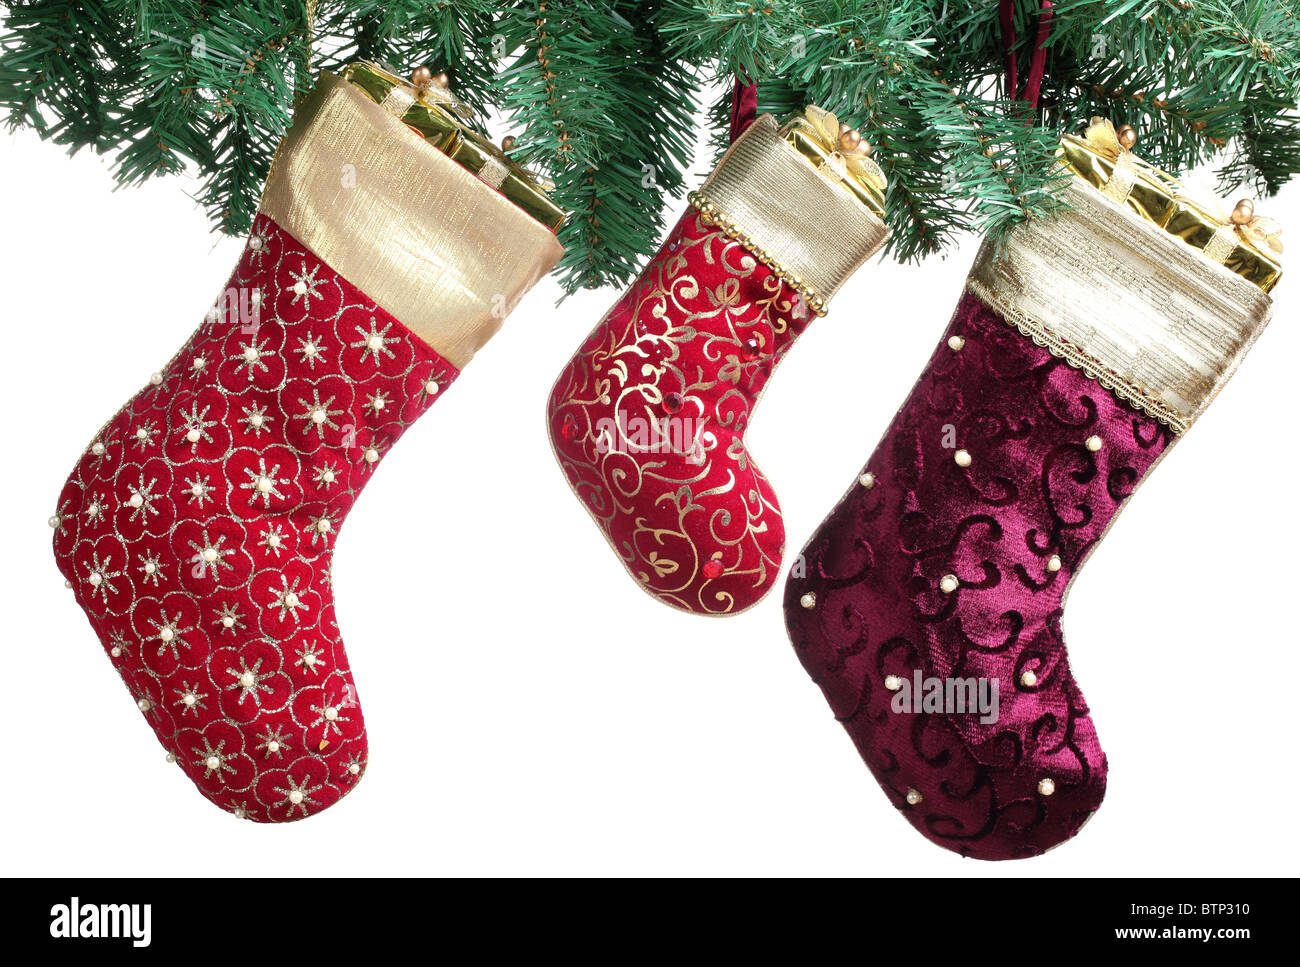 Christmas stocking with green spruce branch hanging over white background. - Stock Image